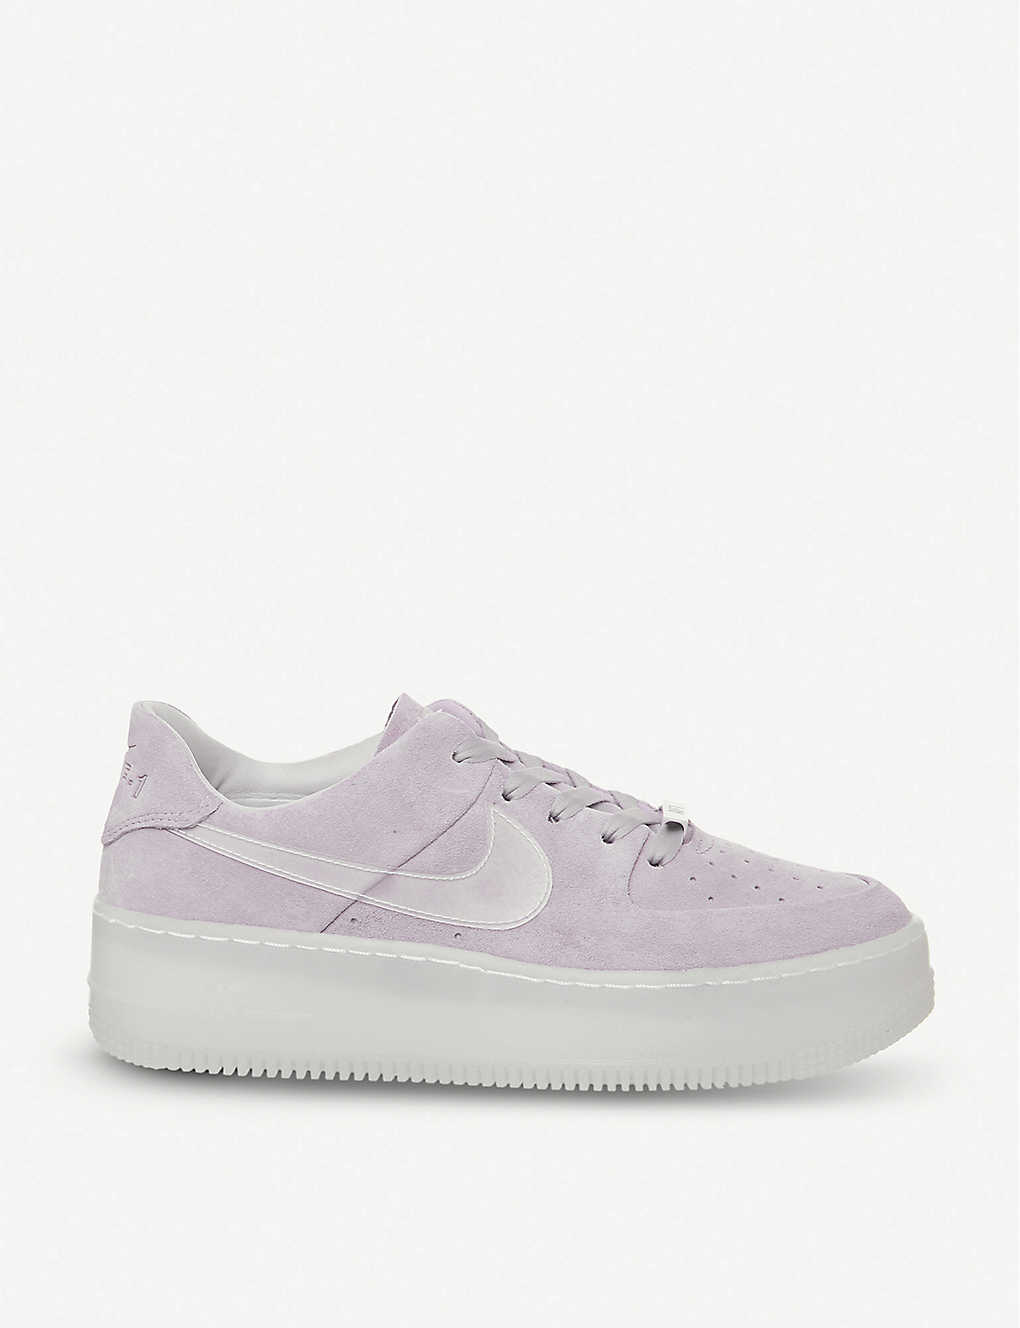 a4f485213e805 Air Force 1 Sage suede trainers - Violet irridescent ...